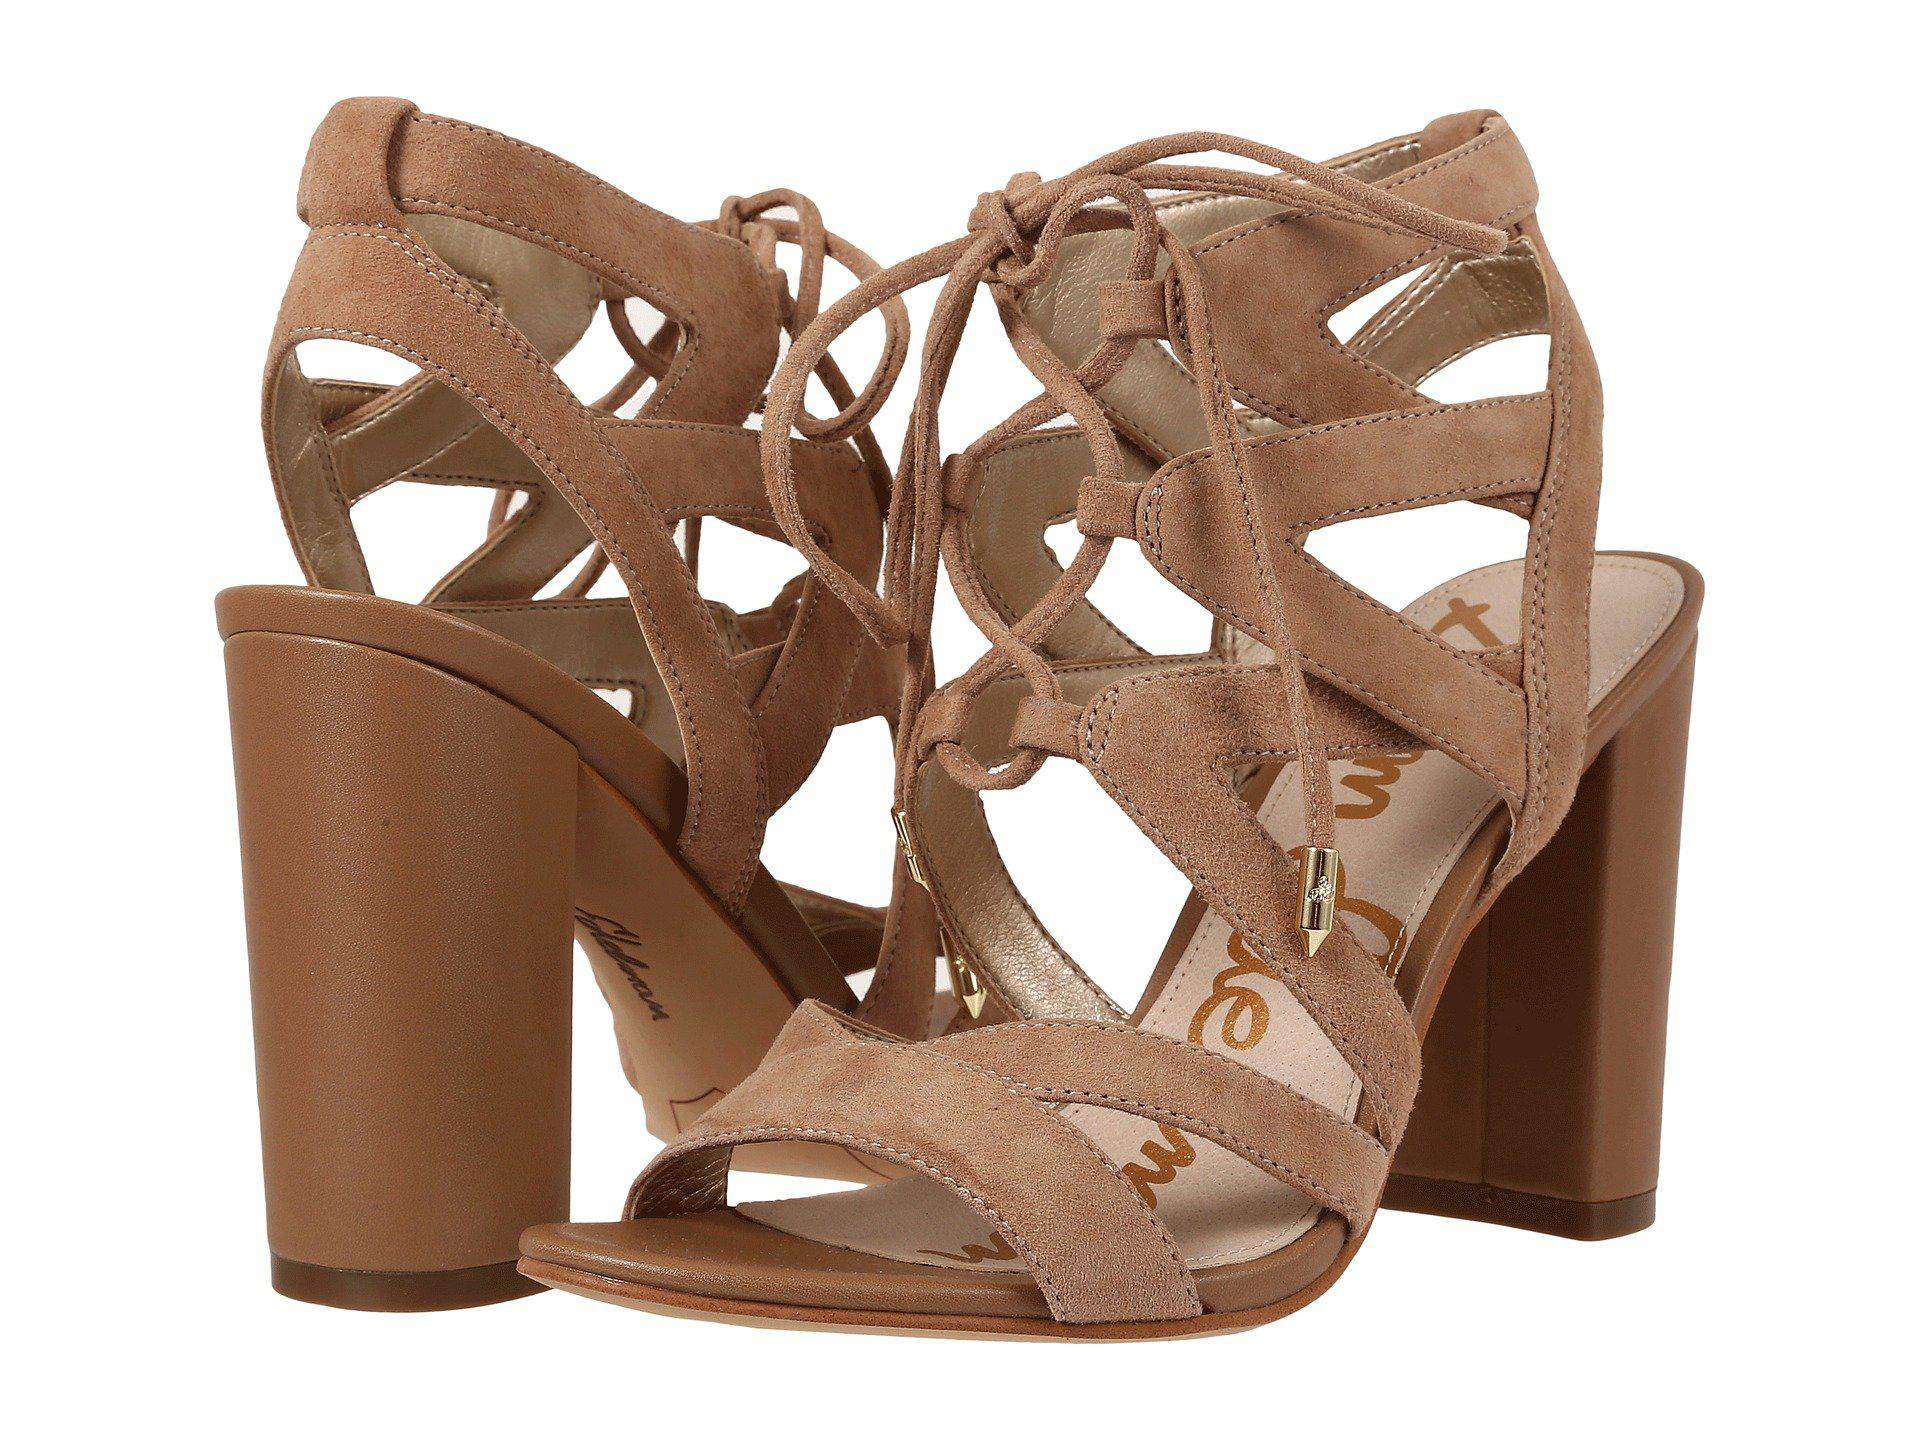 7cf2ac1131d8ad Lyst - Sam Edelman Yardley Cut-Out Suede Sandals in Natural